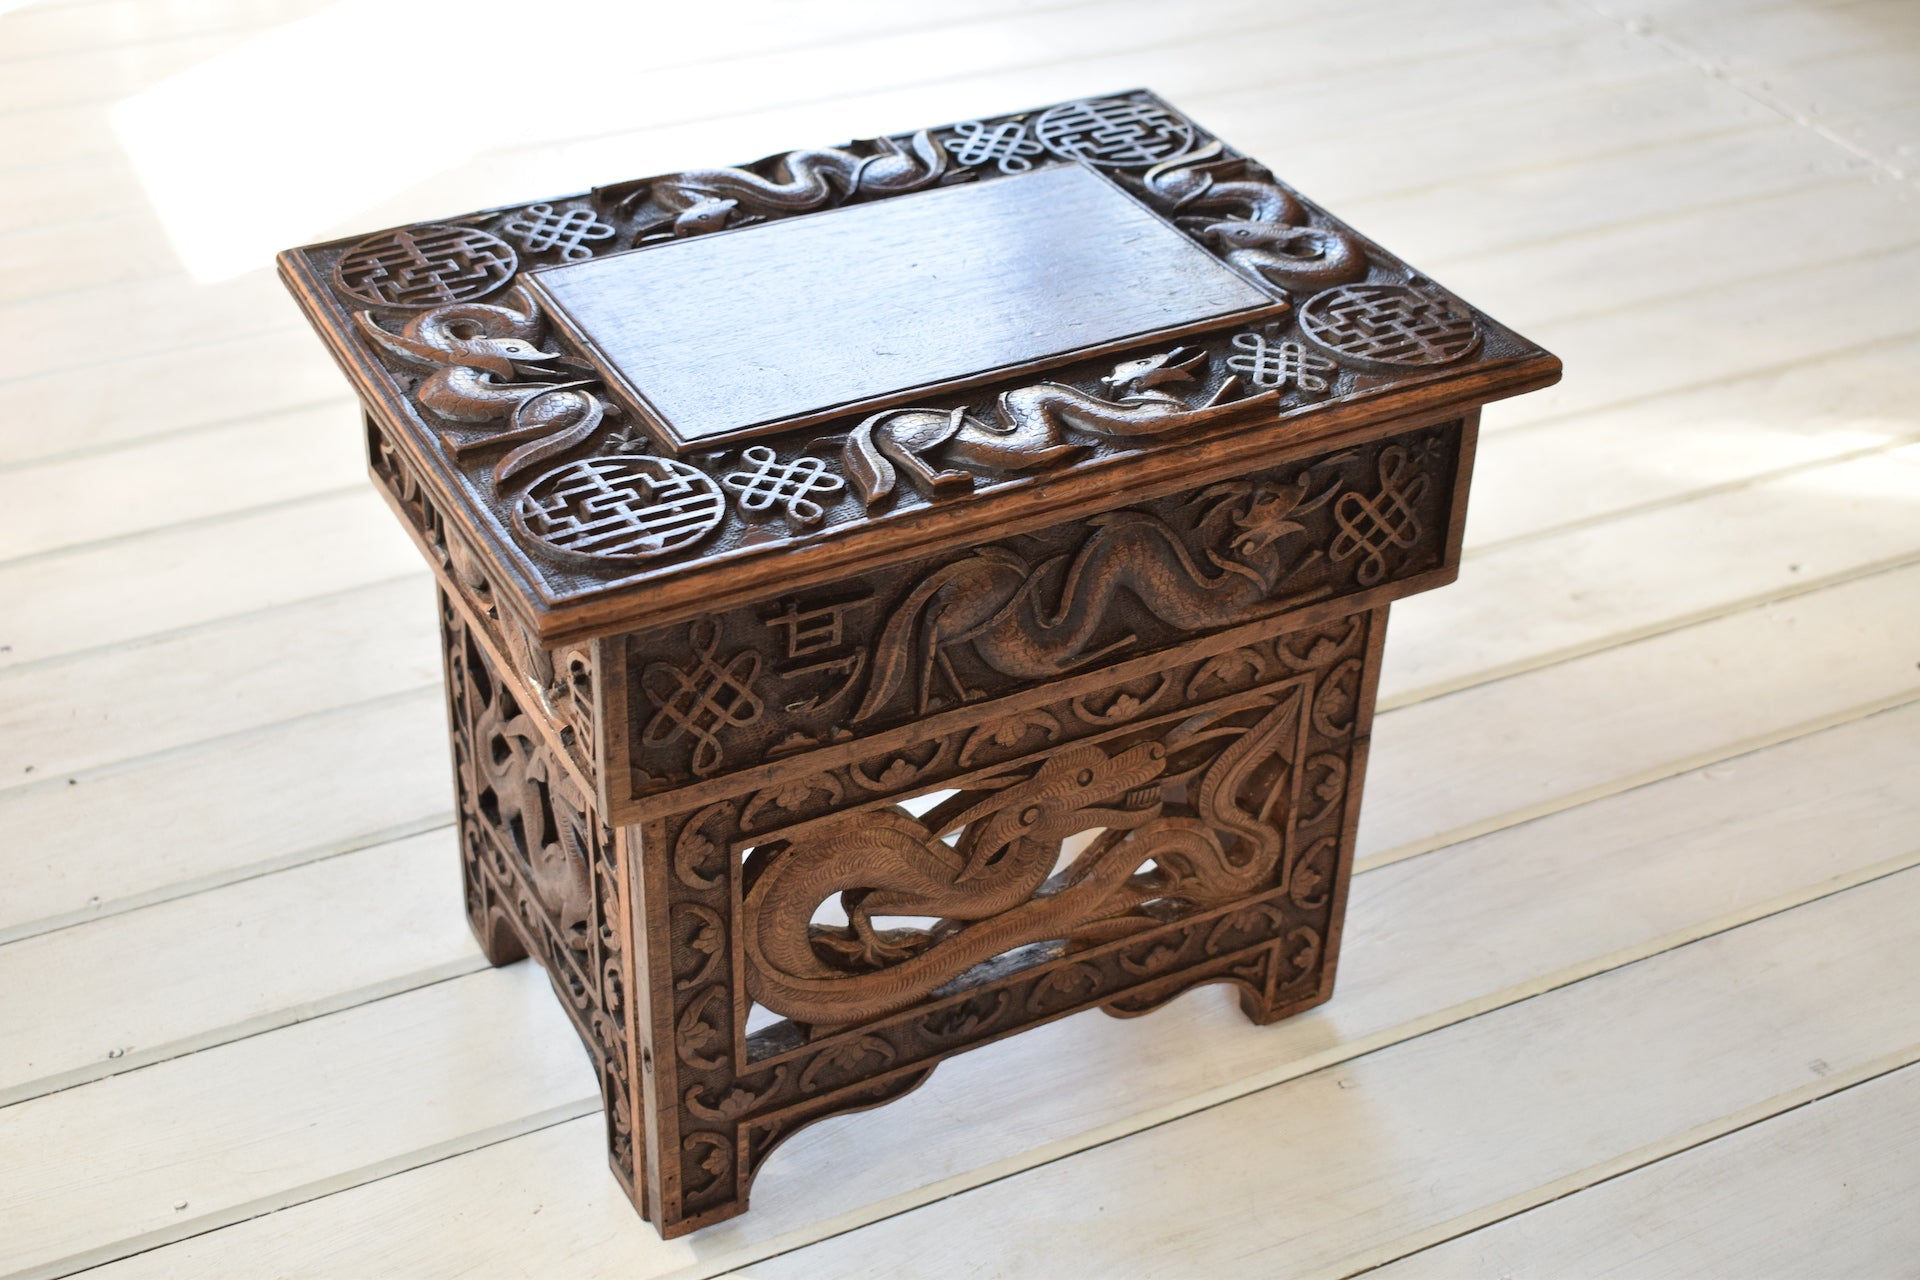 Pleasing Antique Chinese Carved Wooden Folding Stool Creativecarmelina Interior Chair Design Creativecarmelinacom